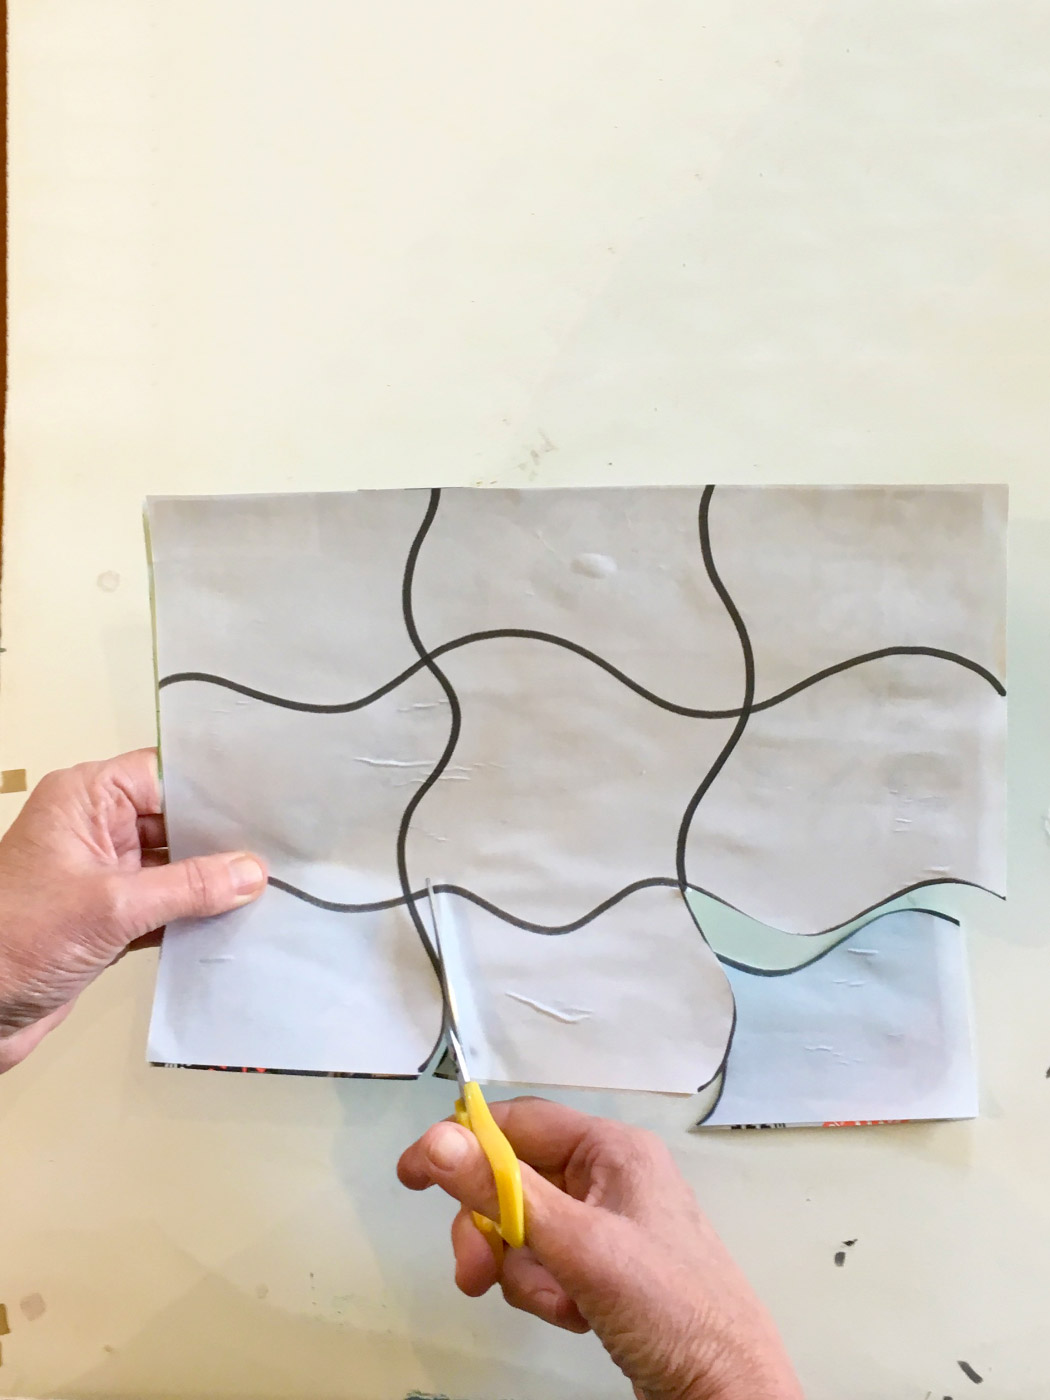 A pair of hands cutting along the lines of a template for a jigsaw puzzle.